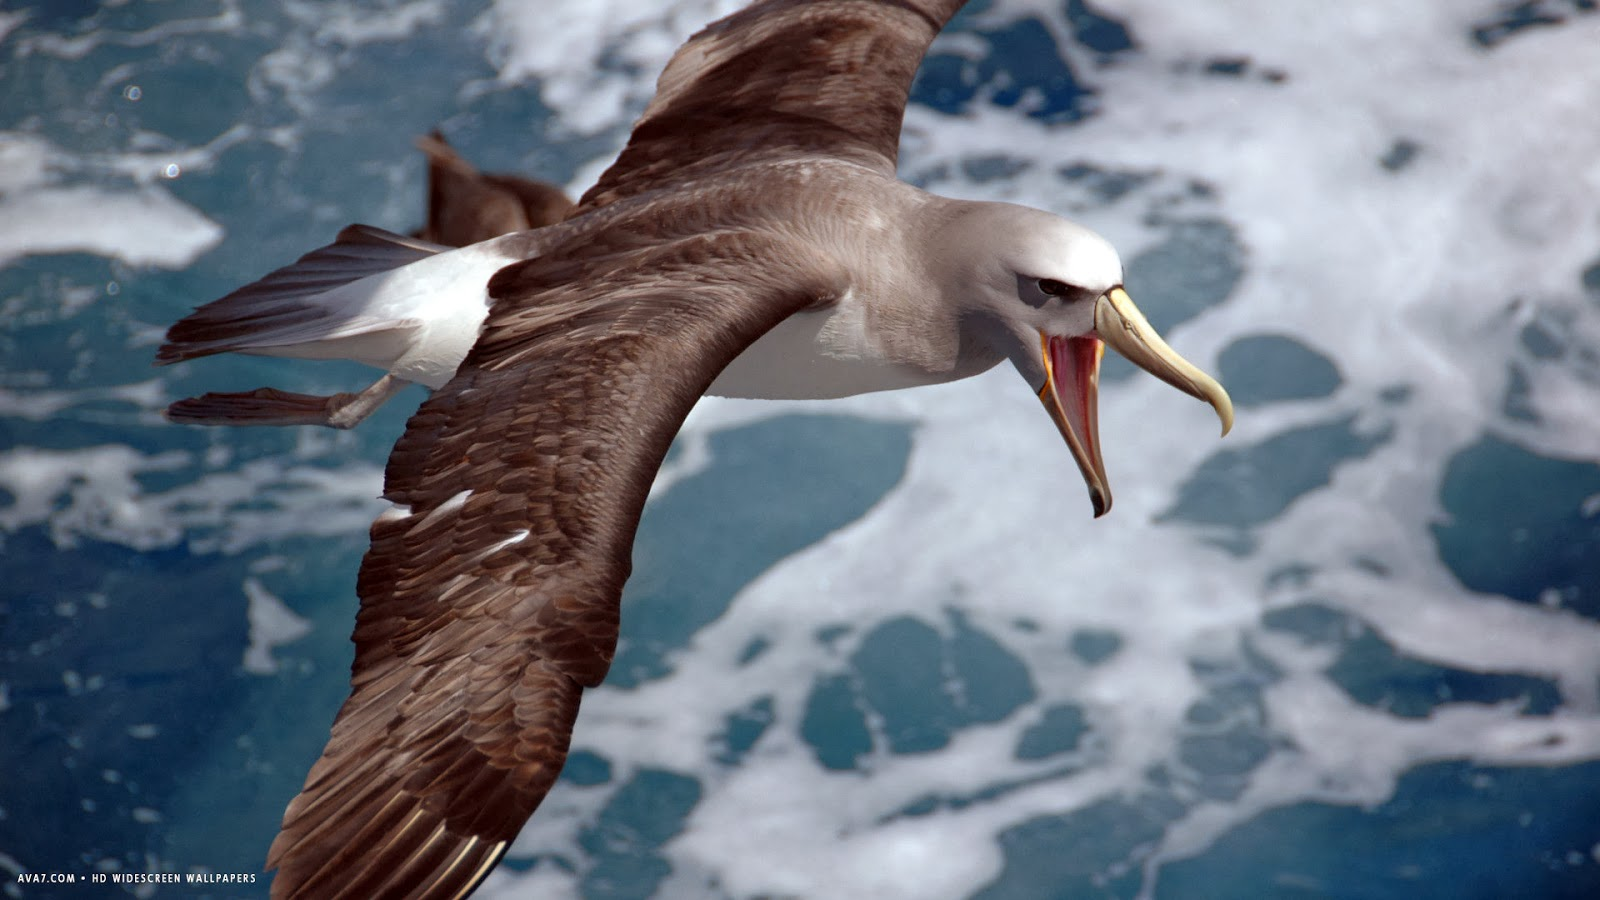 Any One 1 6 Jaeger Birds Hd Wallpapers: Any One 1-6: Albatross Images